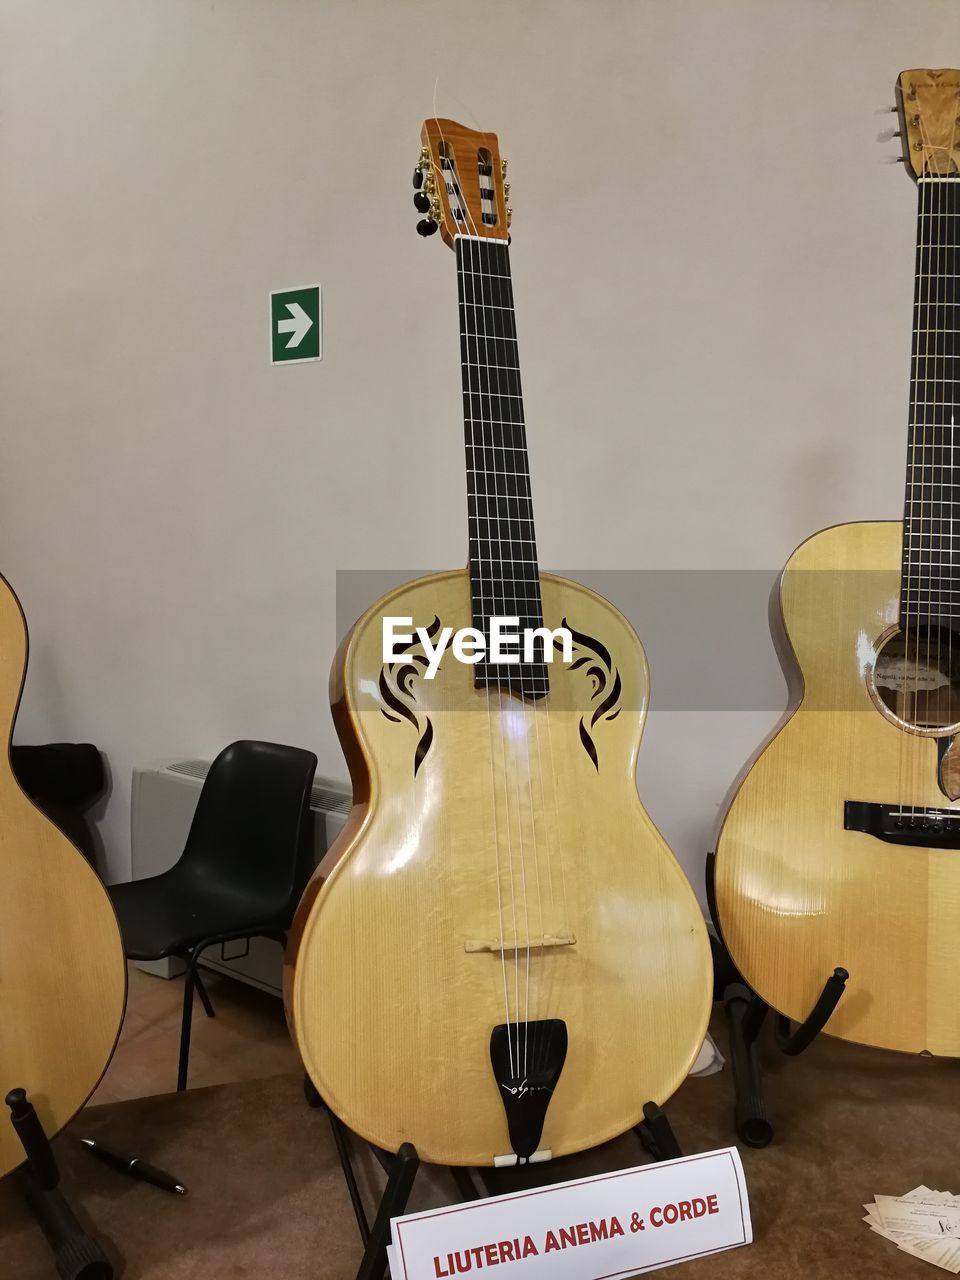 musical instrument, music, string instrument, musical equipment, guitar, indoors, arts culture and entertainment, musical instrument string, string, no people, wall - building feature, still life, electric guitar, wind instrument, acoustic guitar, wood - material, text, close-up, fretboard, woodwind instrument